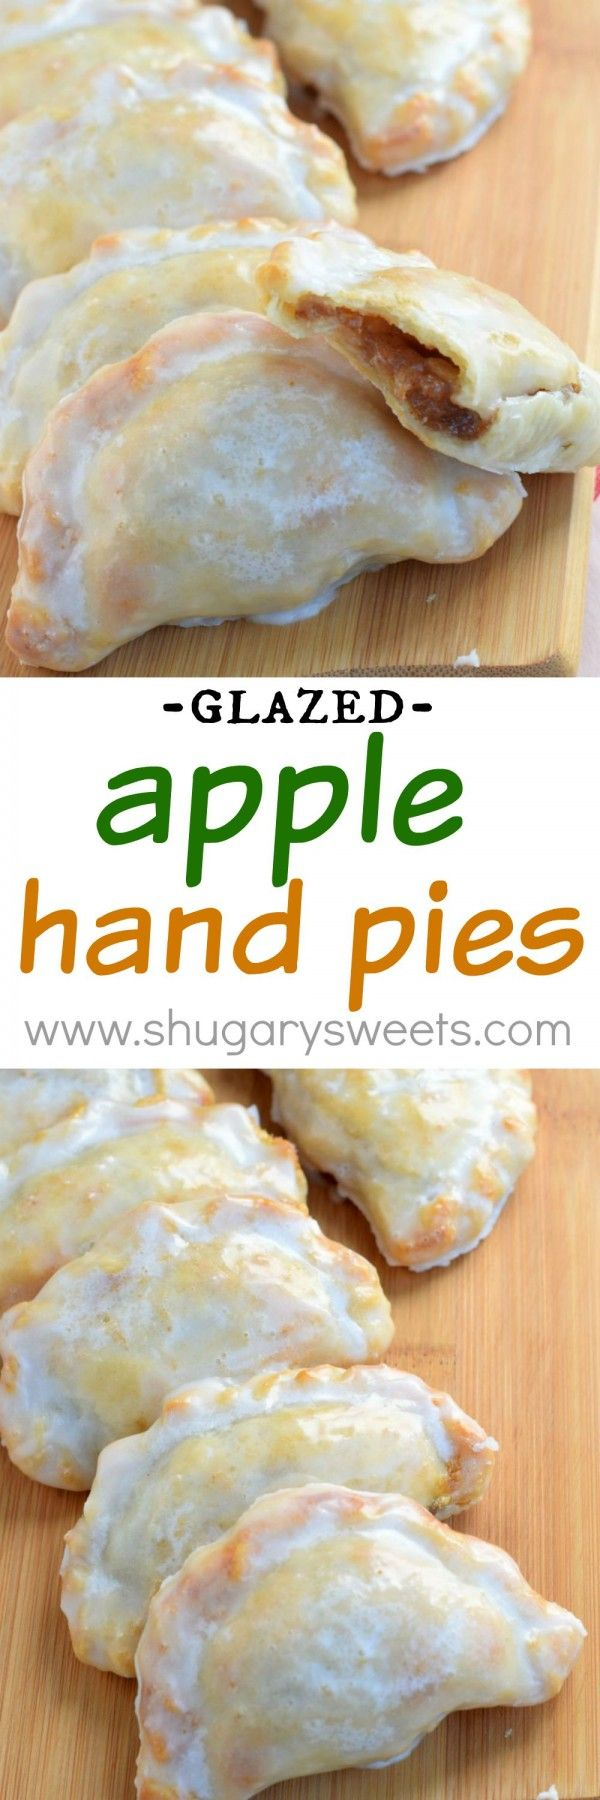 These Glazed Apple Hand Pies are the perfect fall treat. And in only 30 minutes, you'll have one of these delicious baked treats in your hands!                                                                                                                                                      More